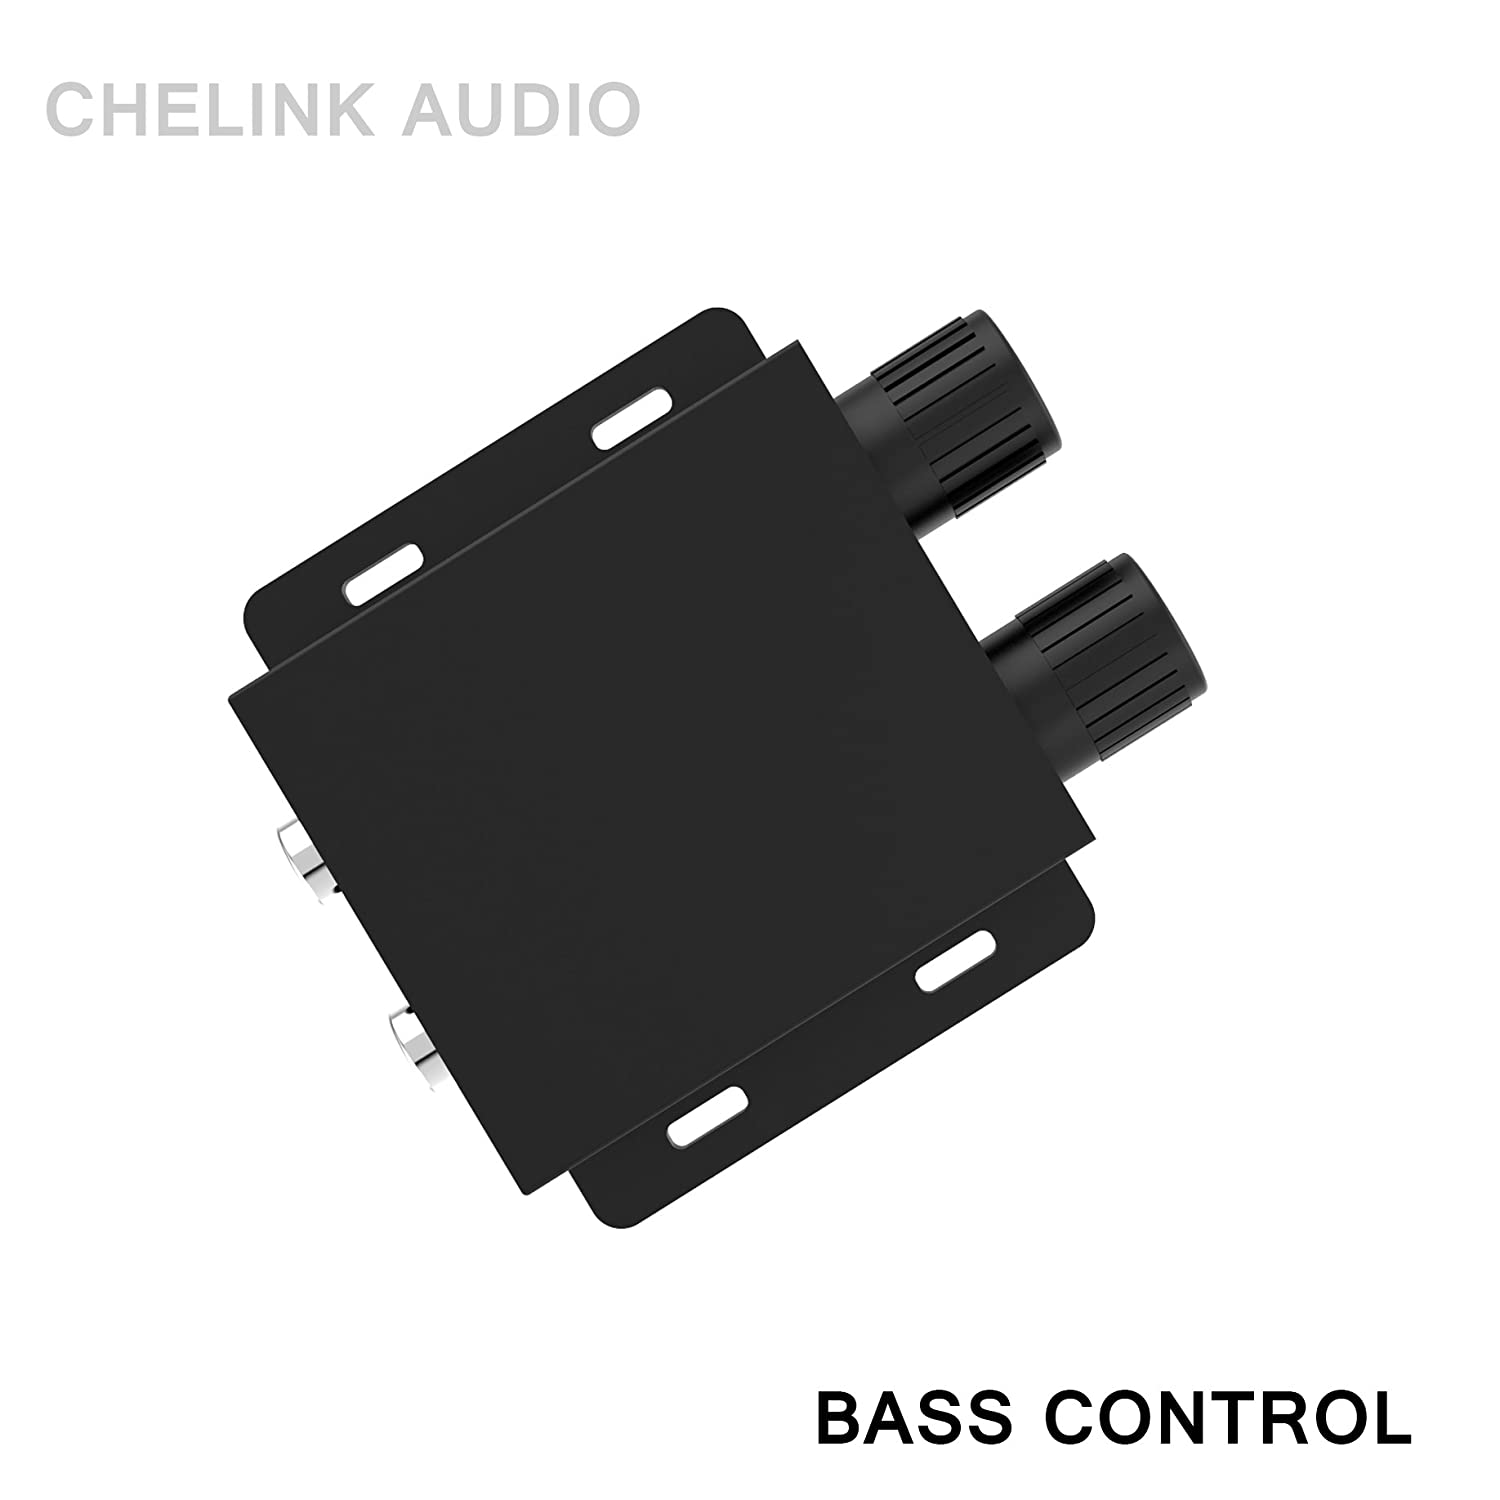 CHELINK Universal Car Remote Bass Control RCA Subwoof Amplifier